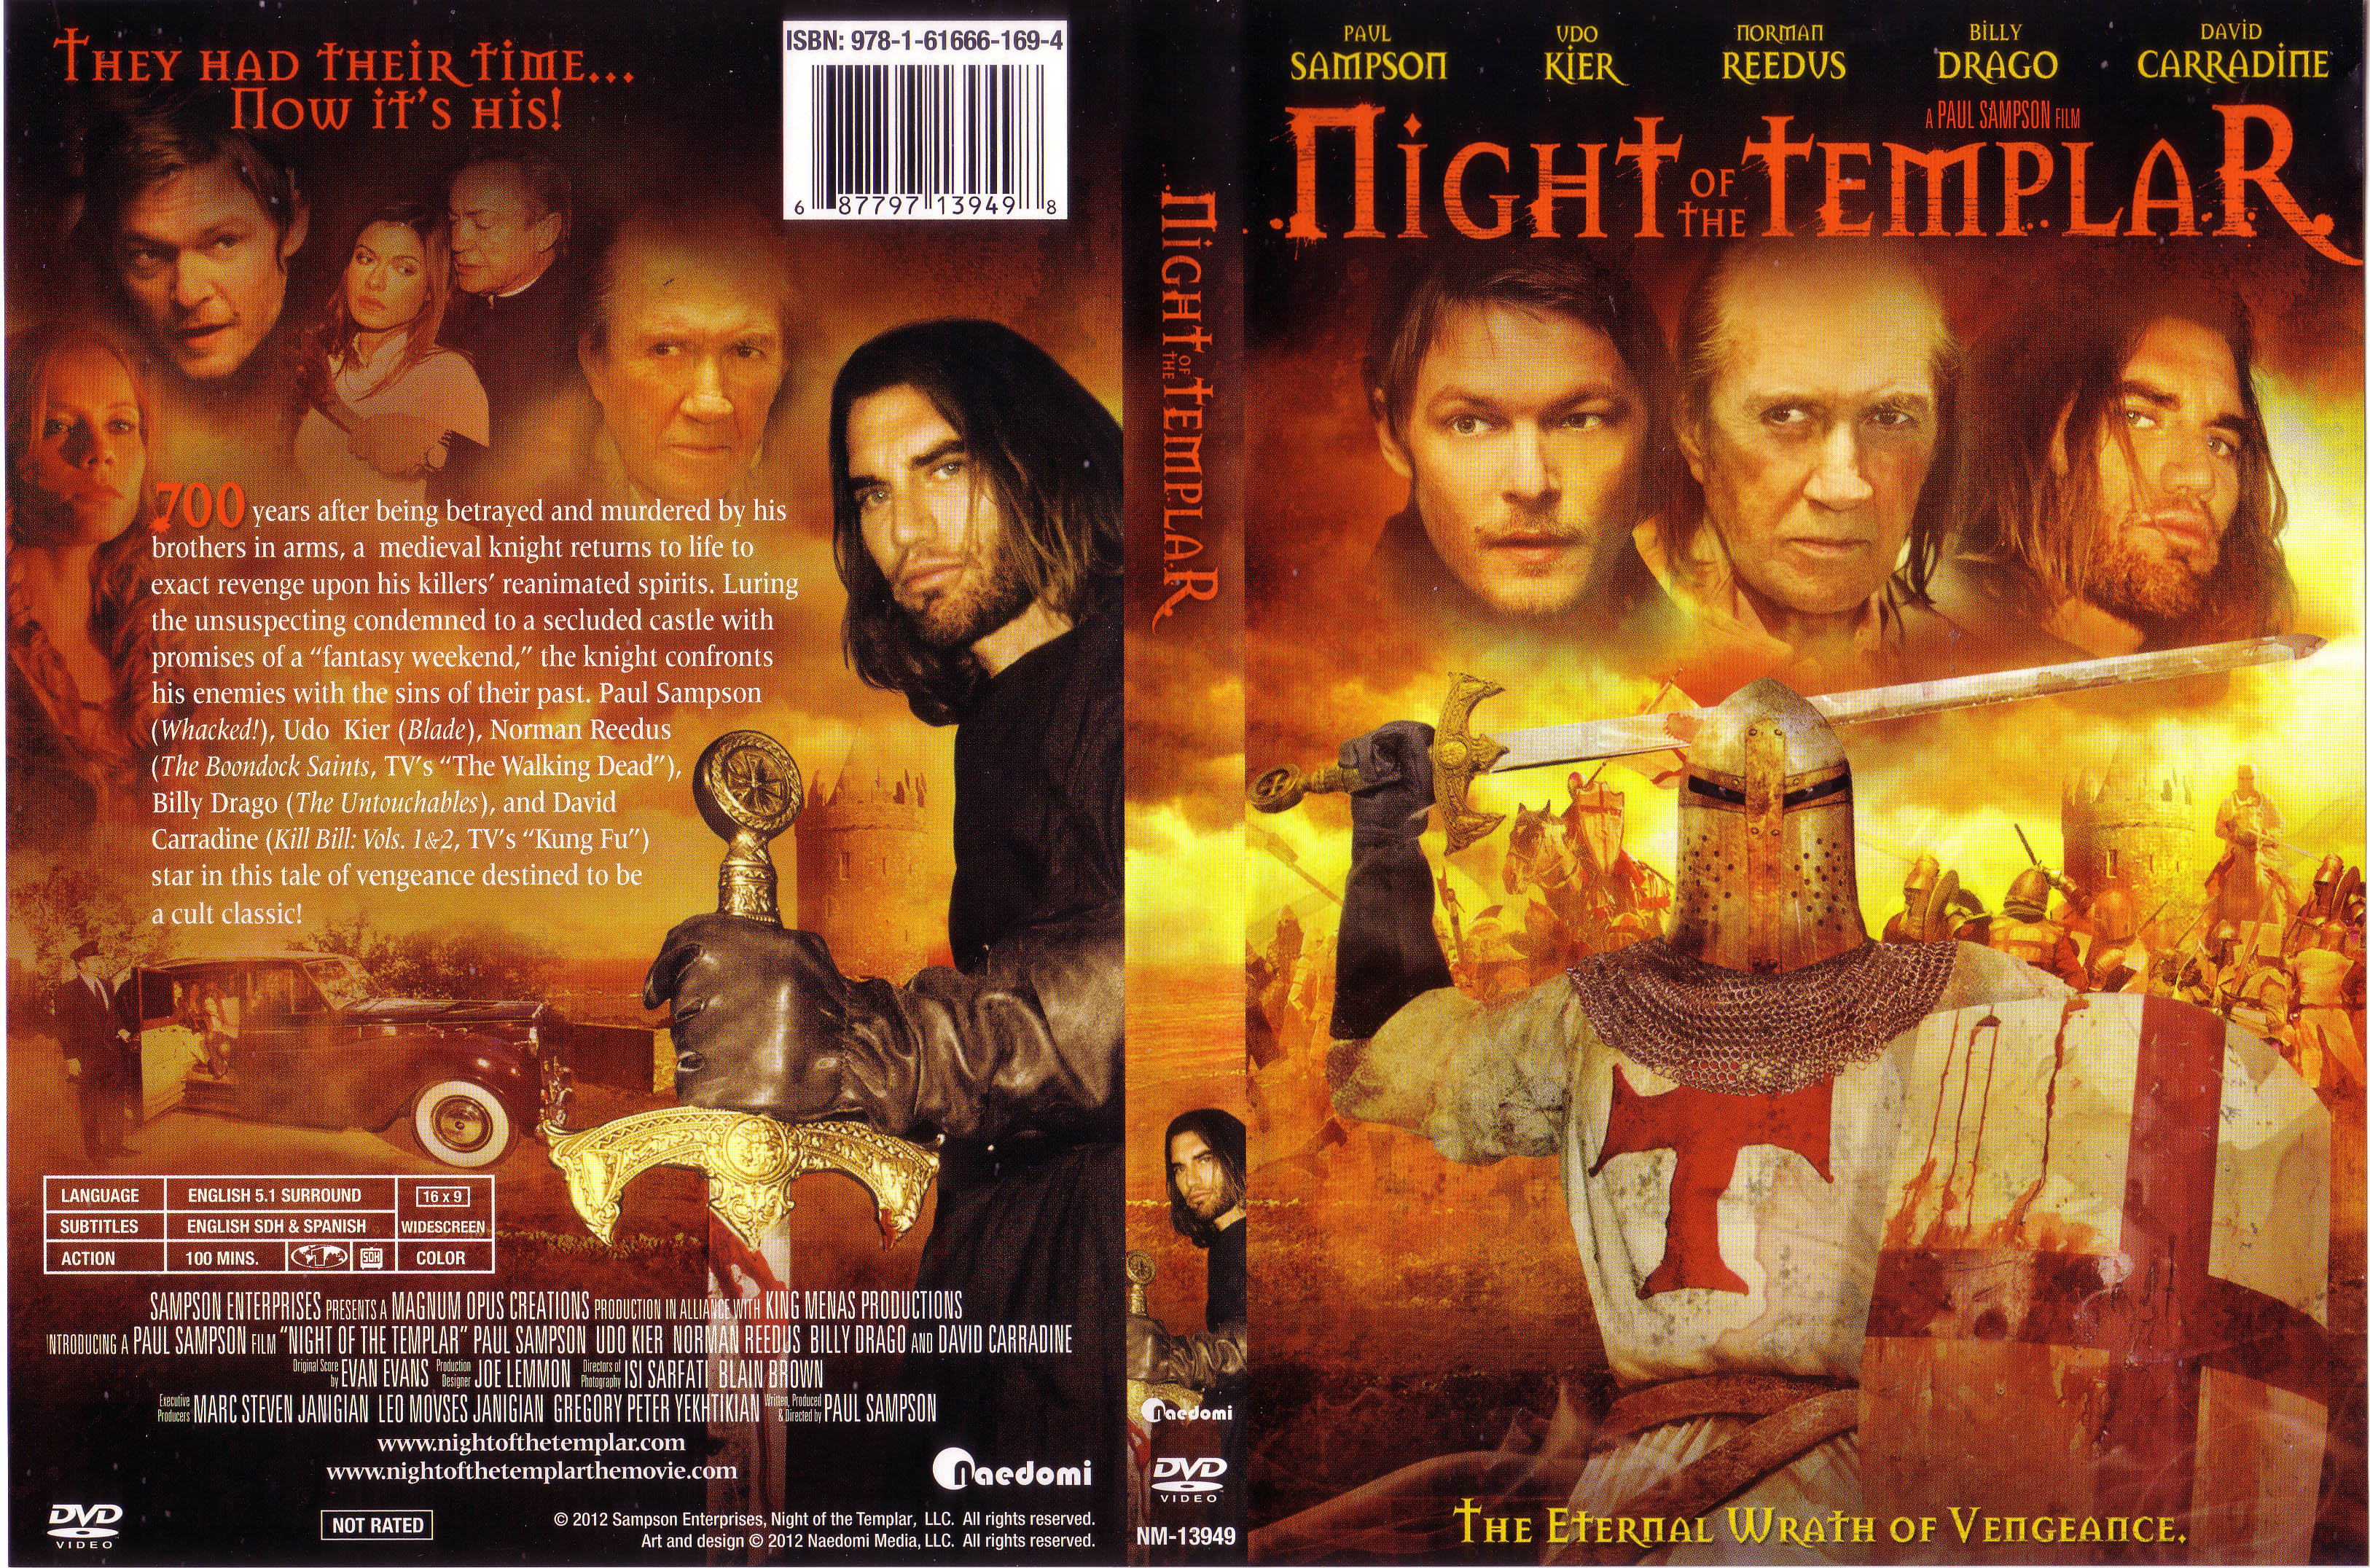 COVERS BOX SK ::: night of the templar 2012 - high quality